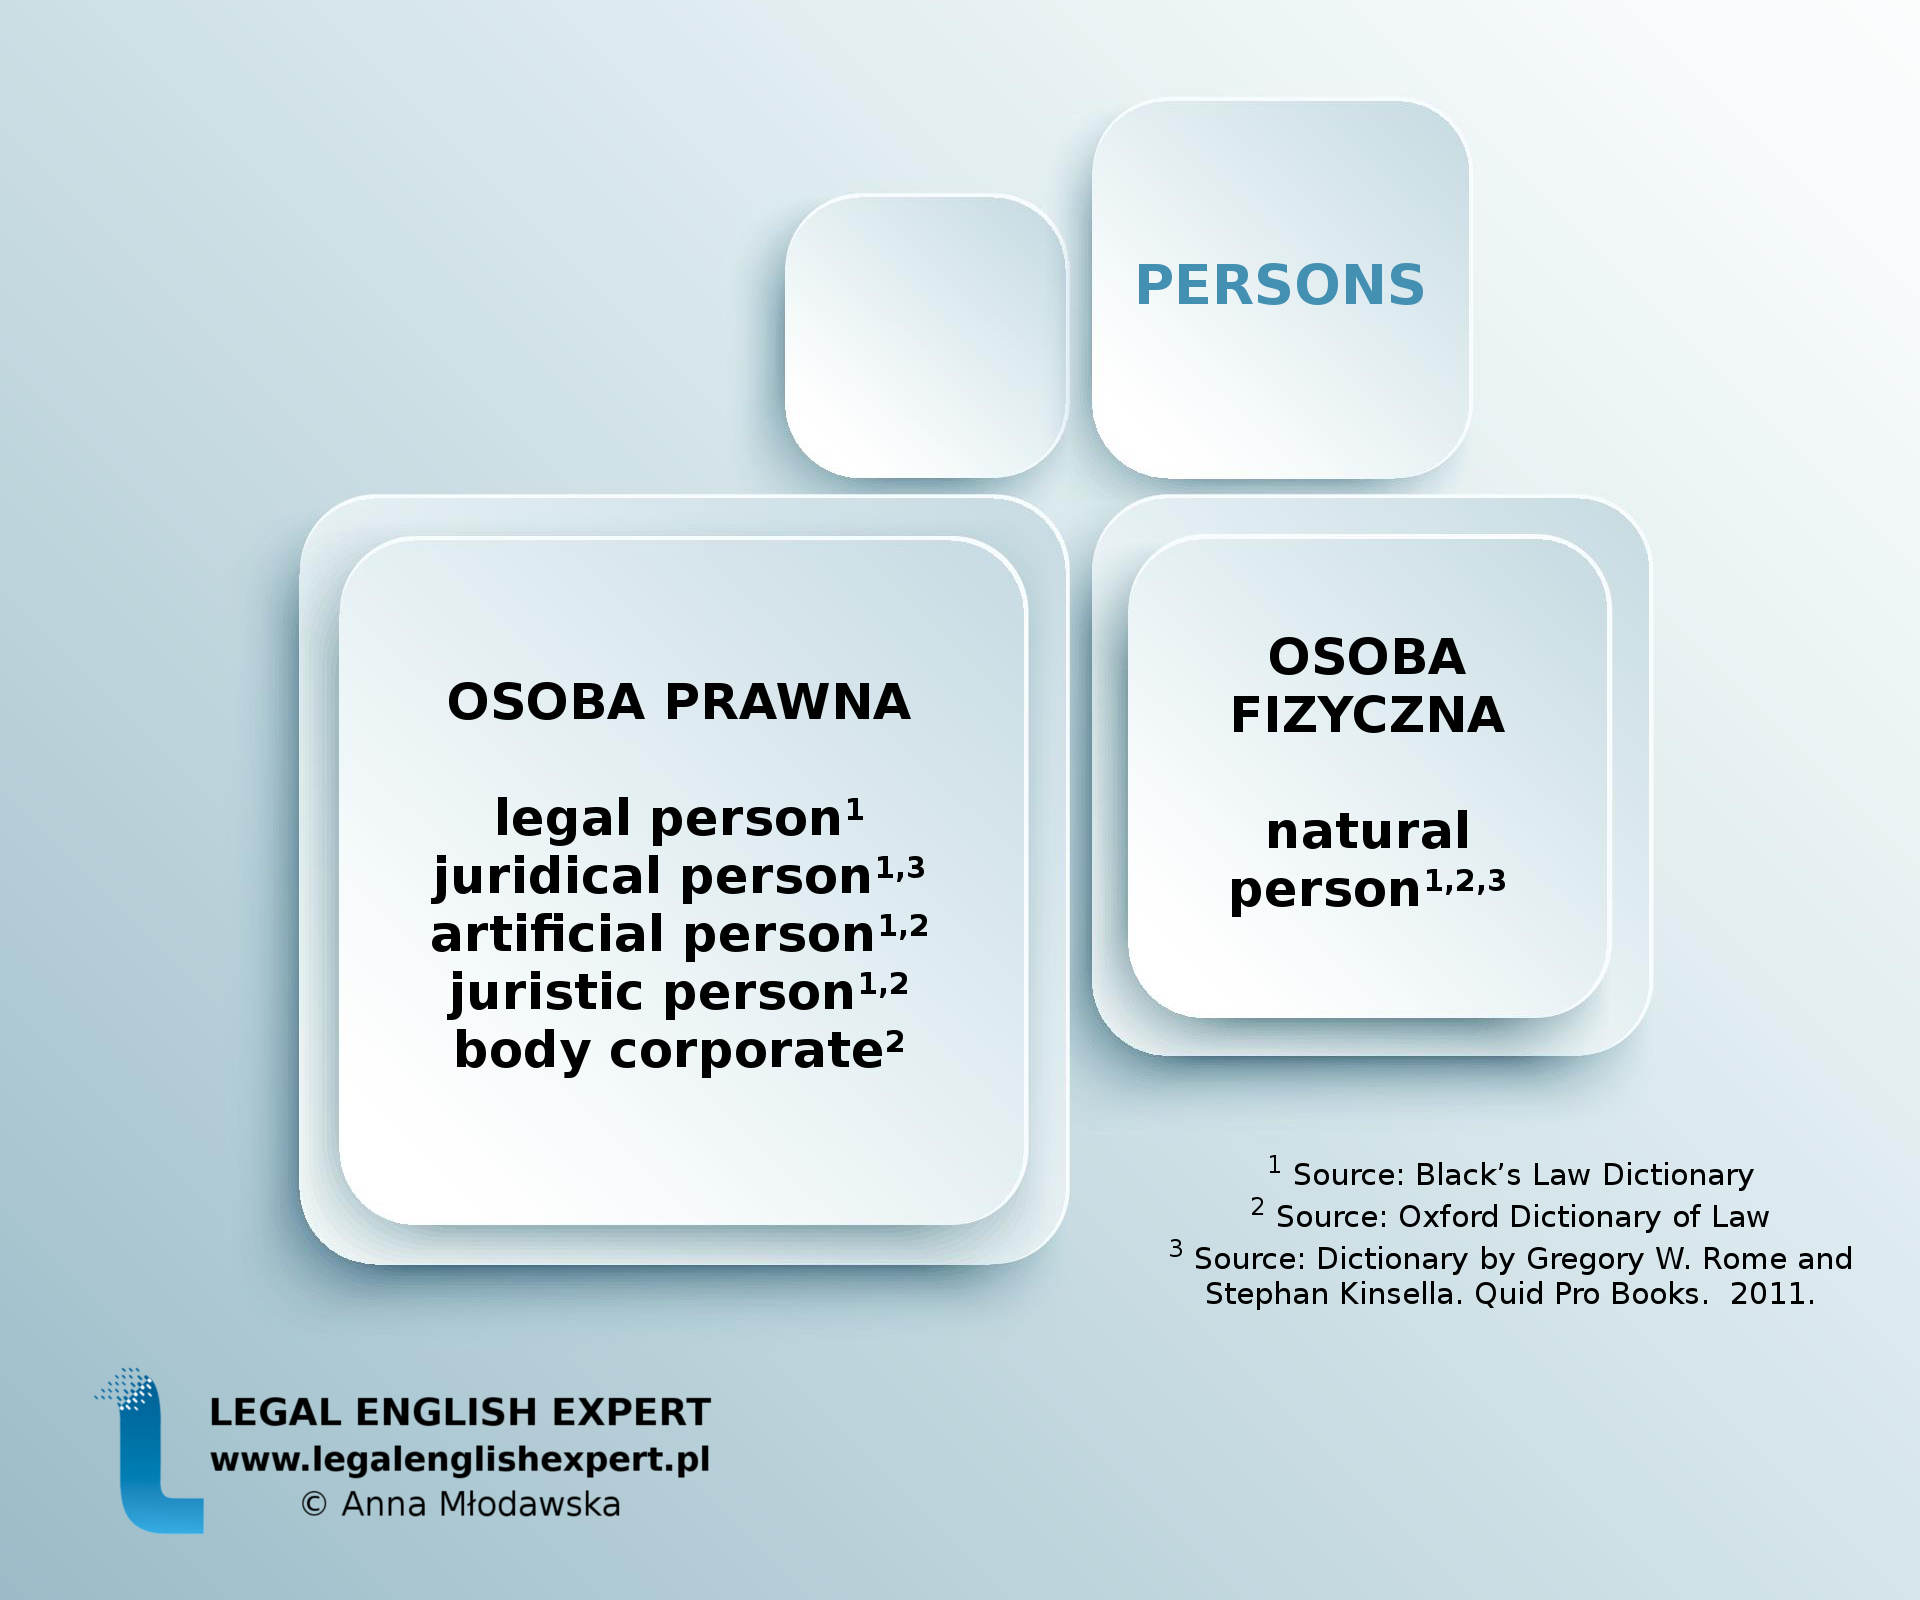 90 - natural and legal persons